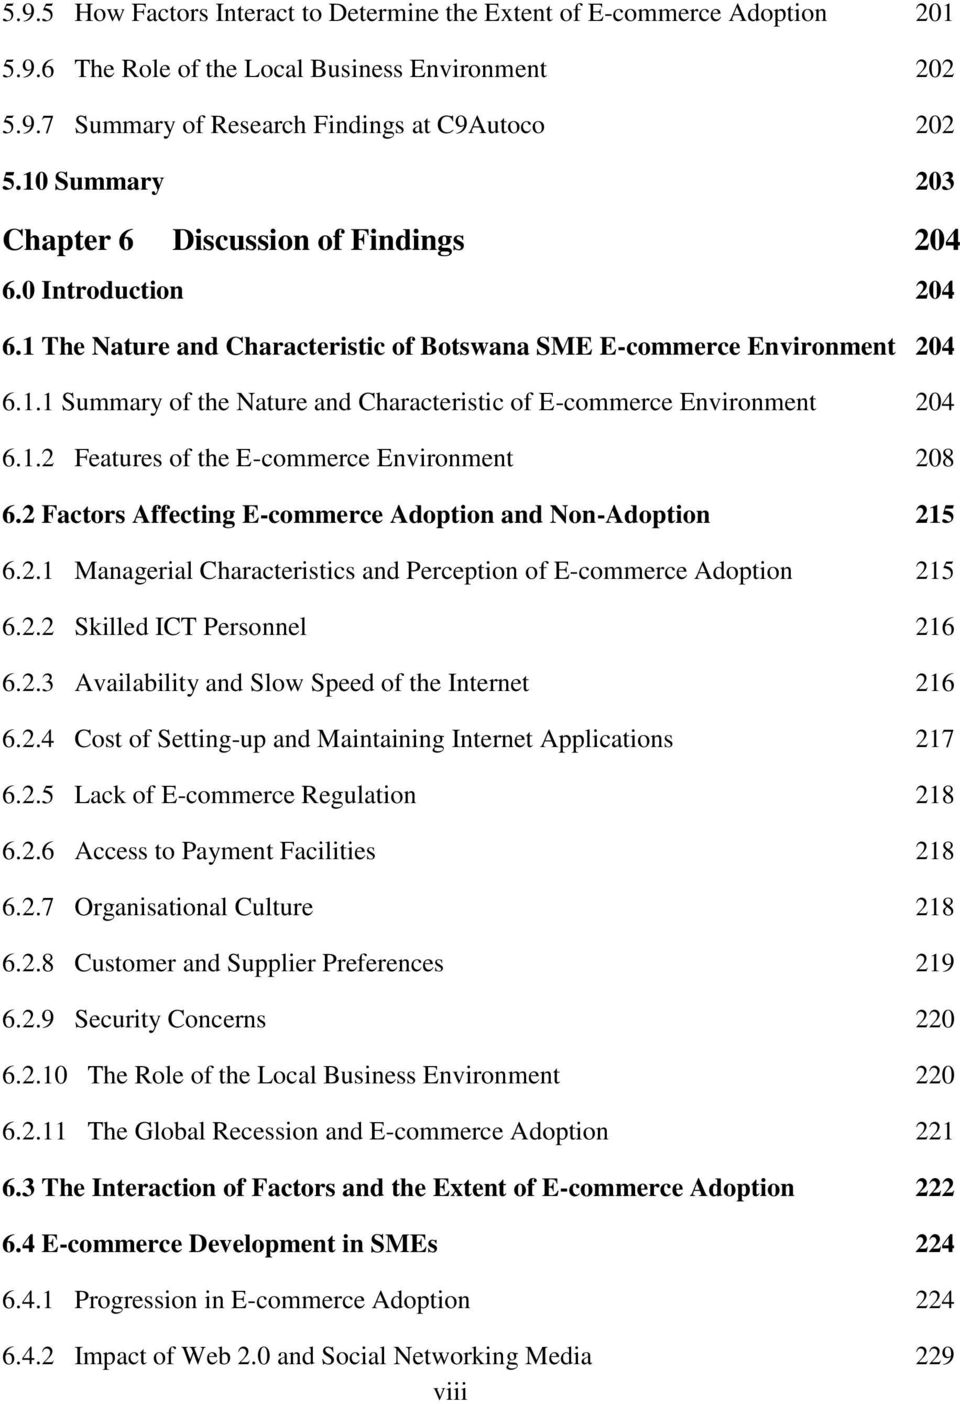 1.2 Features of the E-commerce Environment 208 6.2 Factors Affecting E-commerce Adoption and Non-Adoption 215 6.2.1 Managerial Characteristics and Perception of E-commerce Adoption 215 6.2.2 Skilled ICT Personnel 216 6.